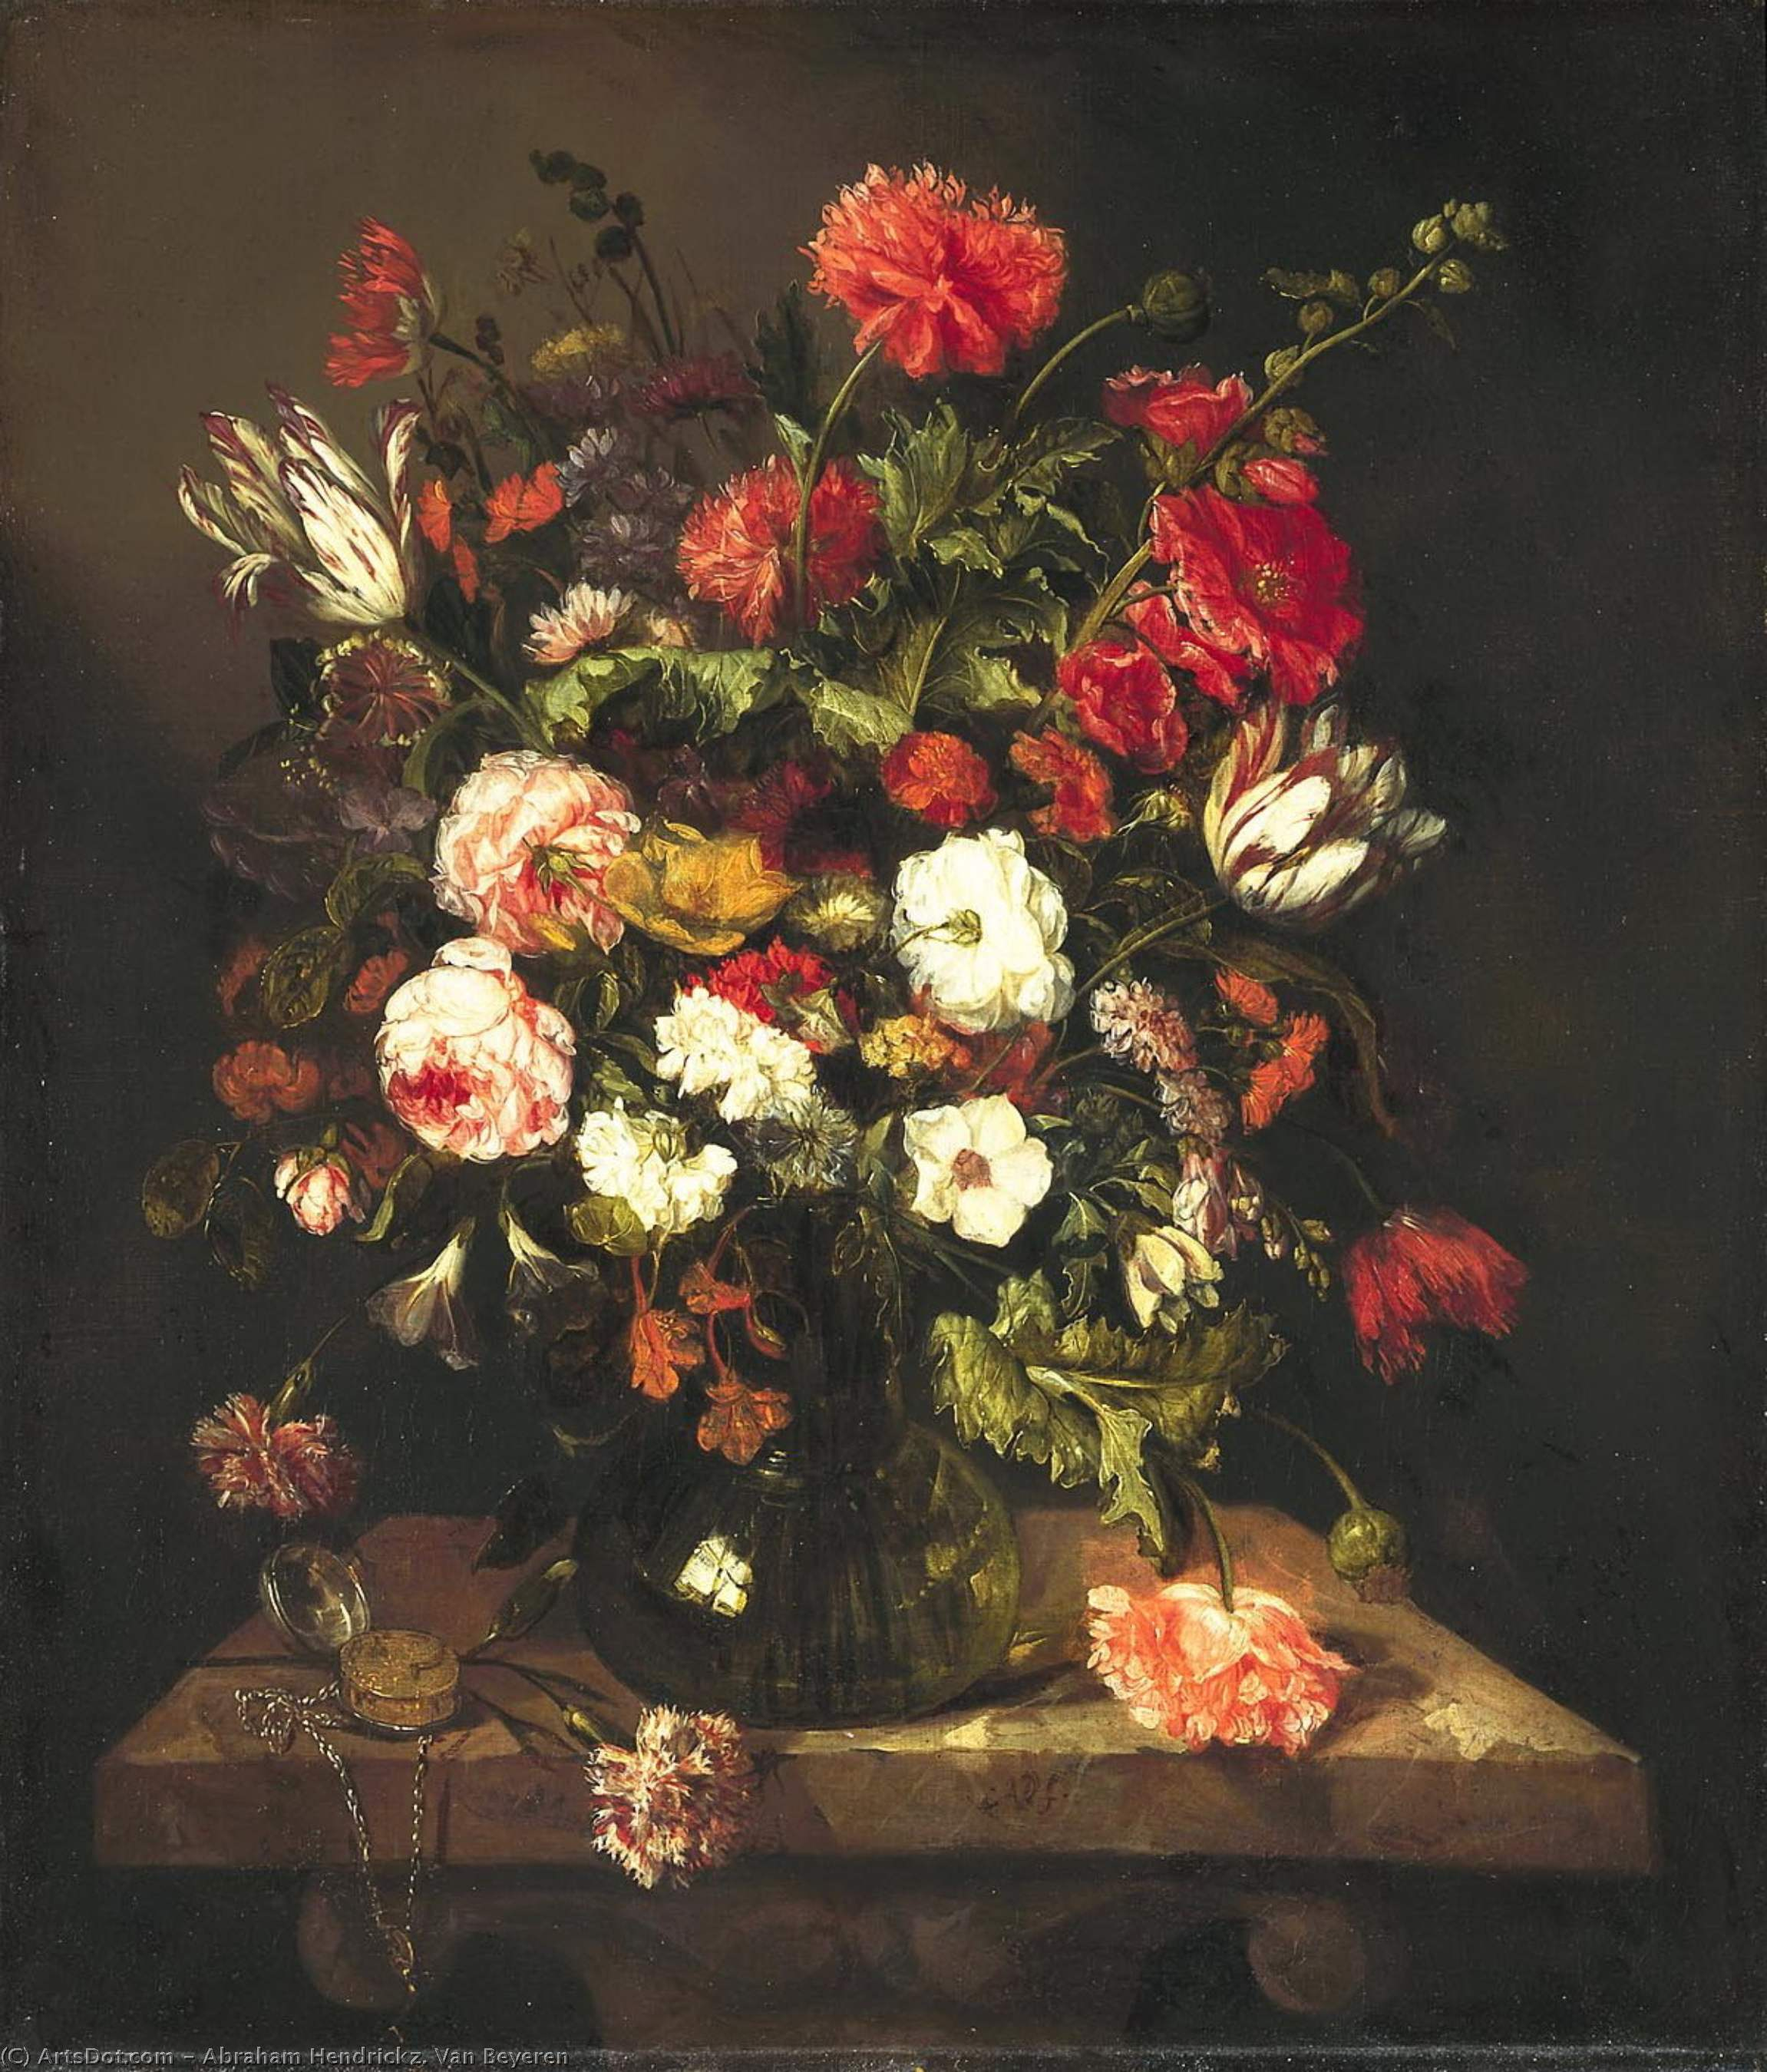 Bouquet of flowers in a glass vase (ok.1663-1665) (80 x 69) (The Hague, the Royal Gallery) by Abraham Hendrickz. Van Beyeren